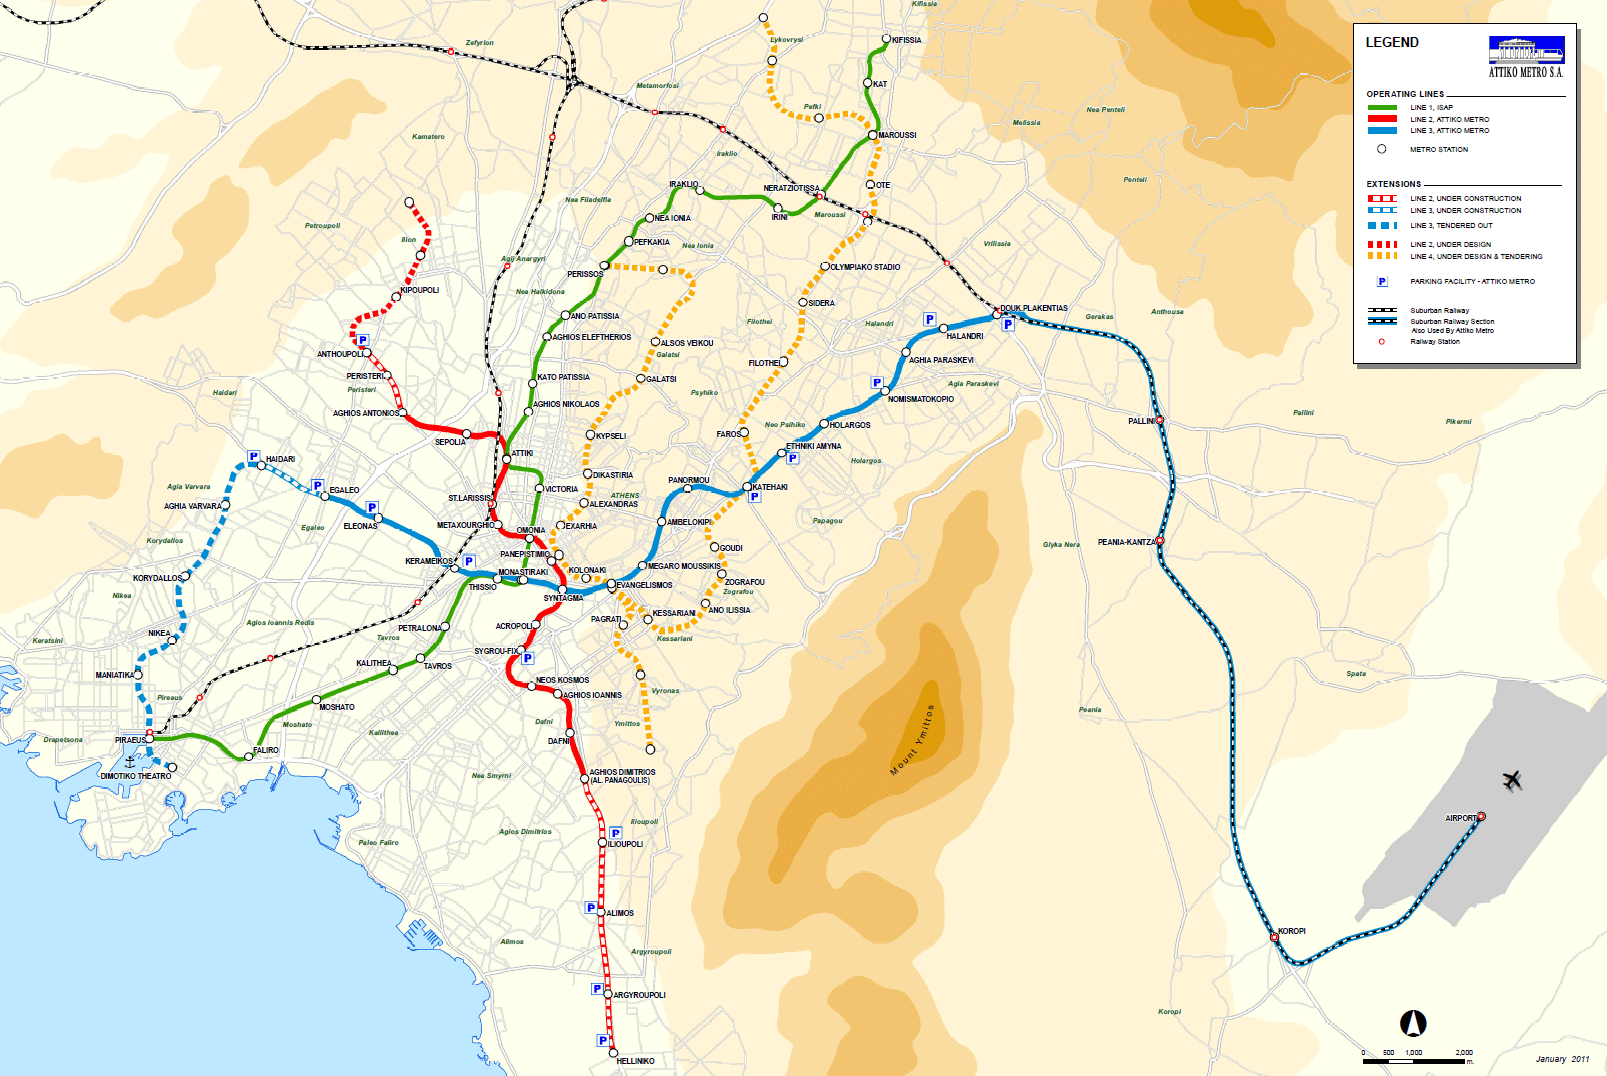 Subway Map Athens Greece.Athens Metro Lines Map Fares And Timetable